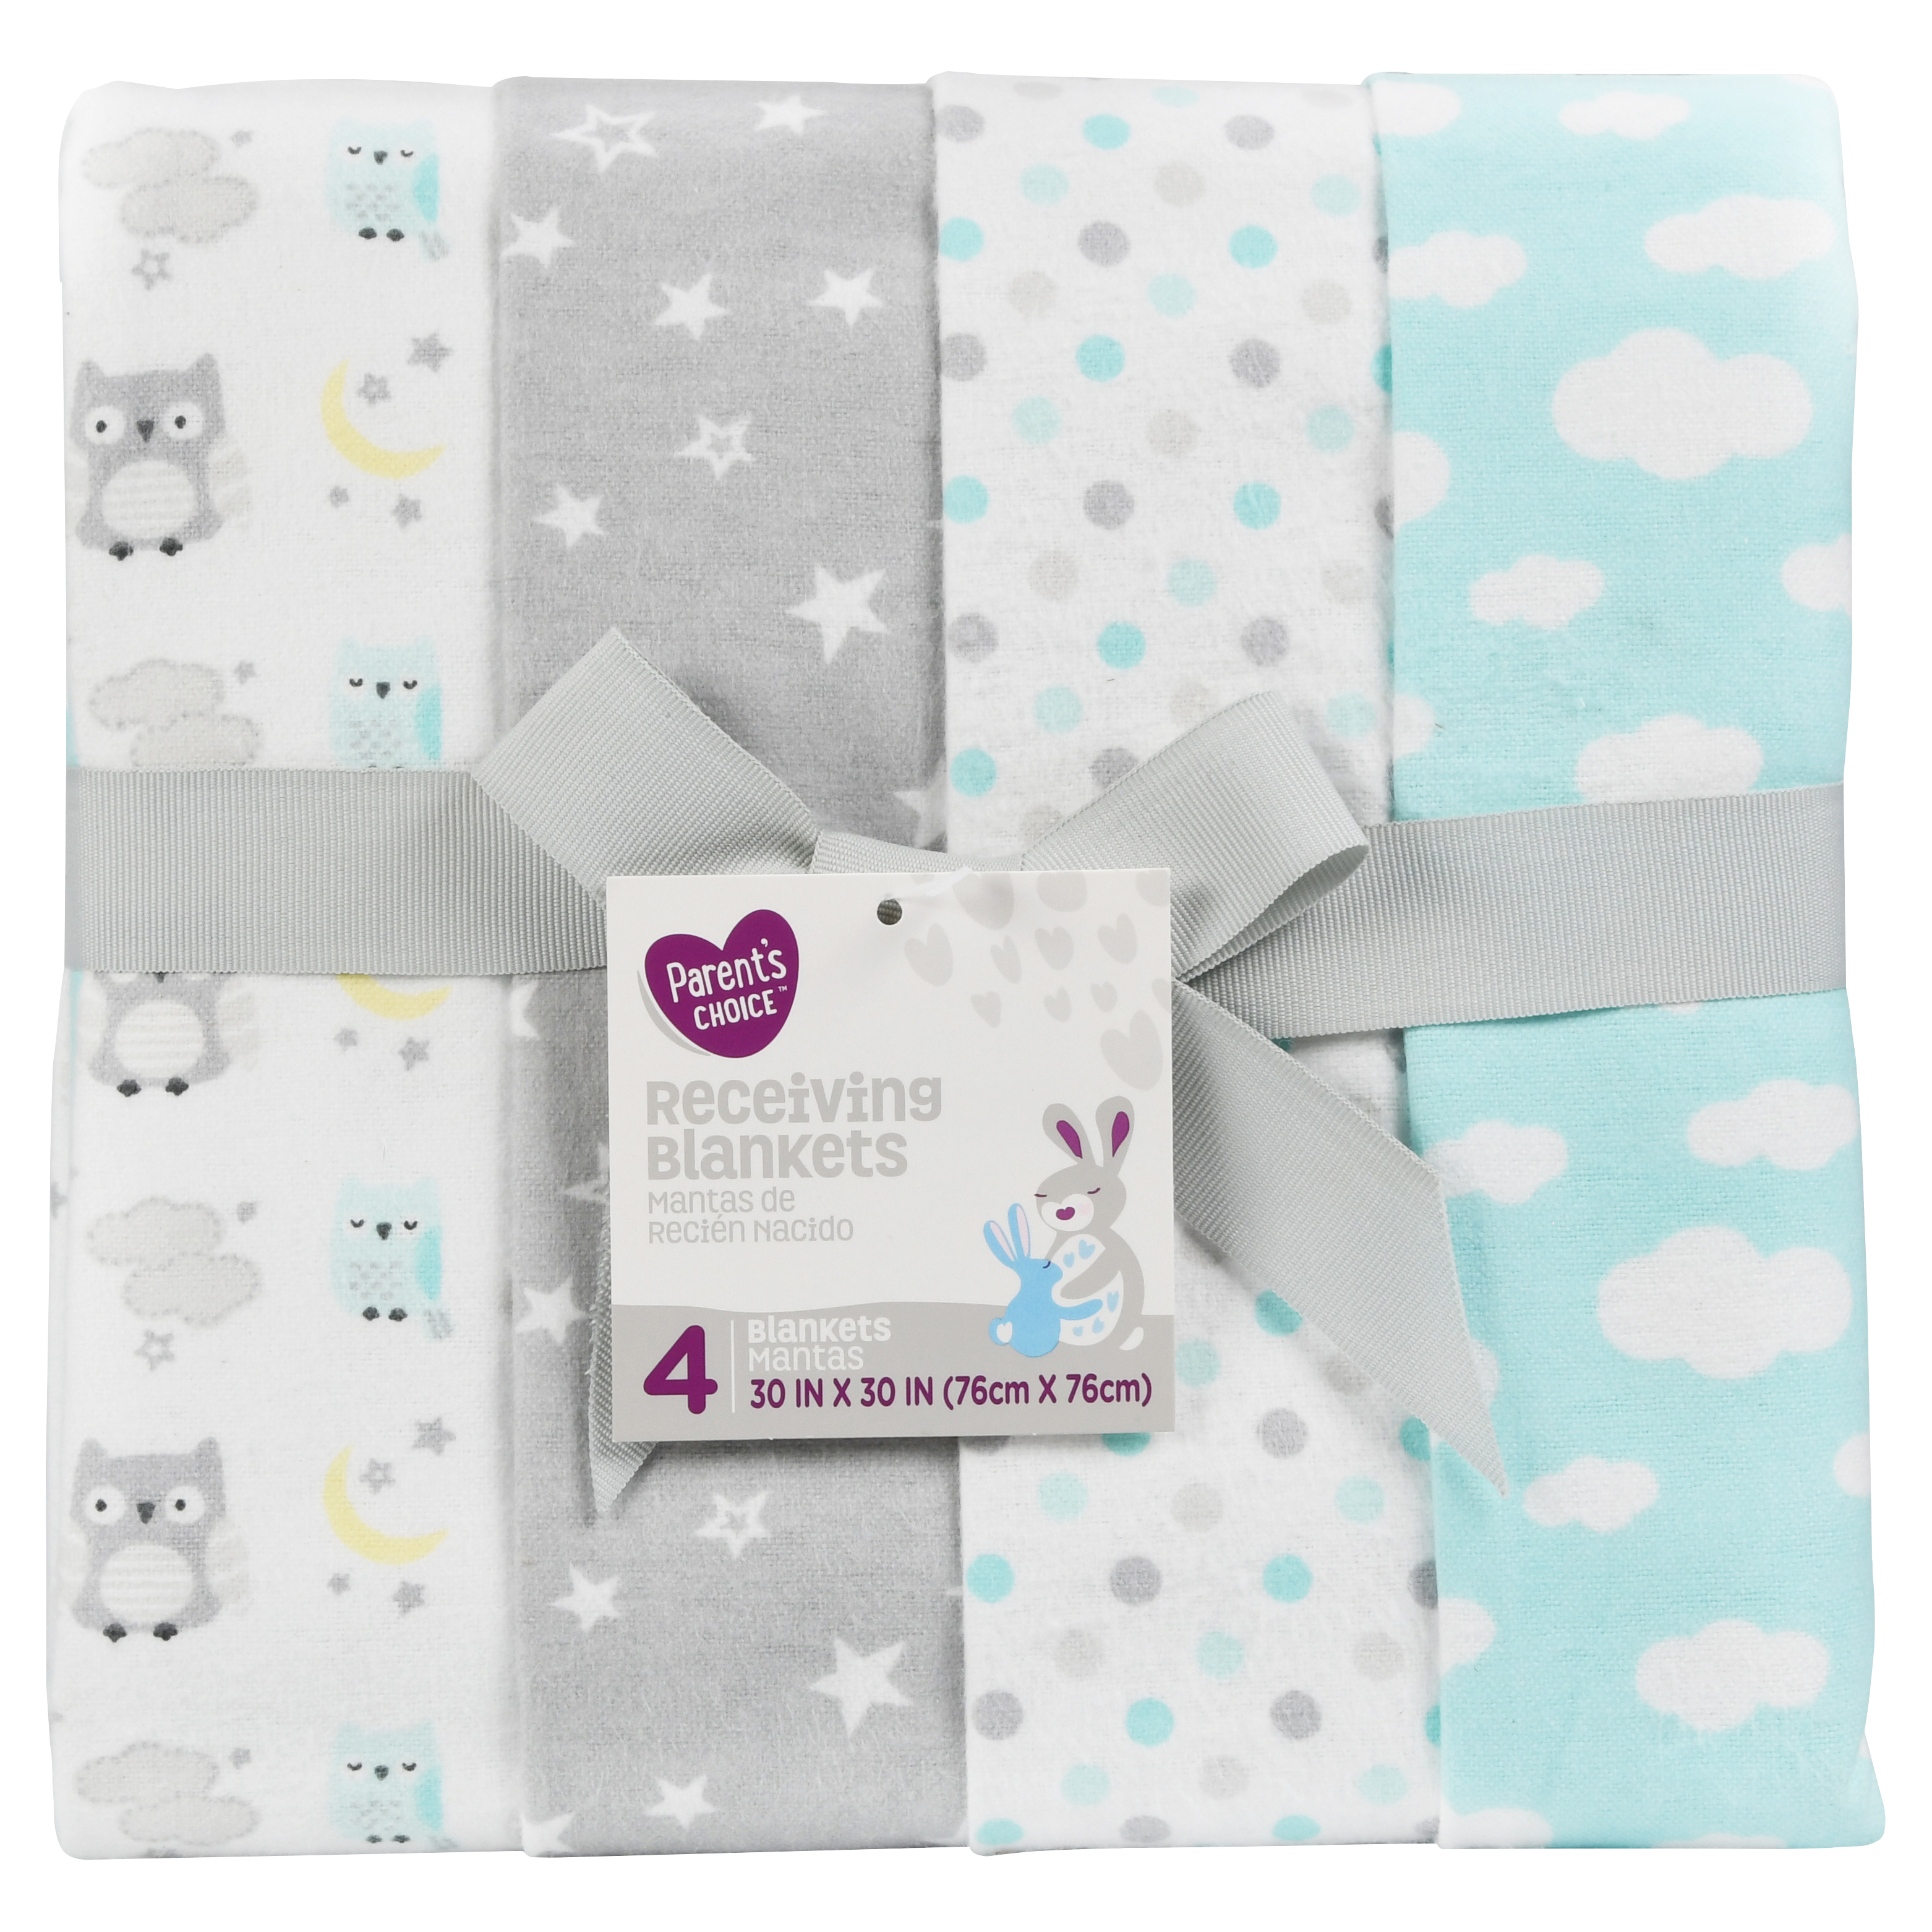 Parent's Choice Receiving Blankets, Various Prints, 4 Pack